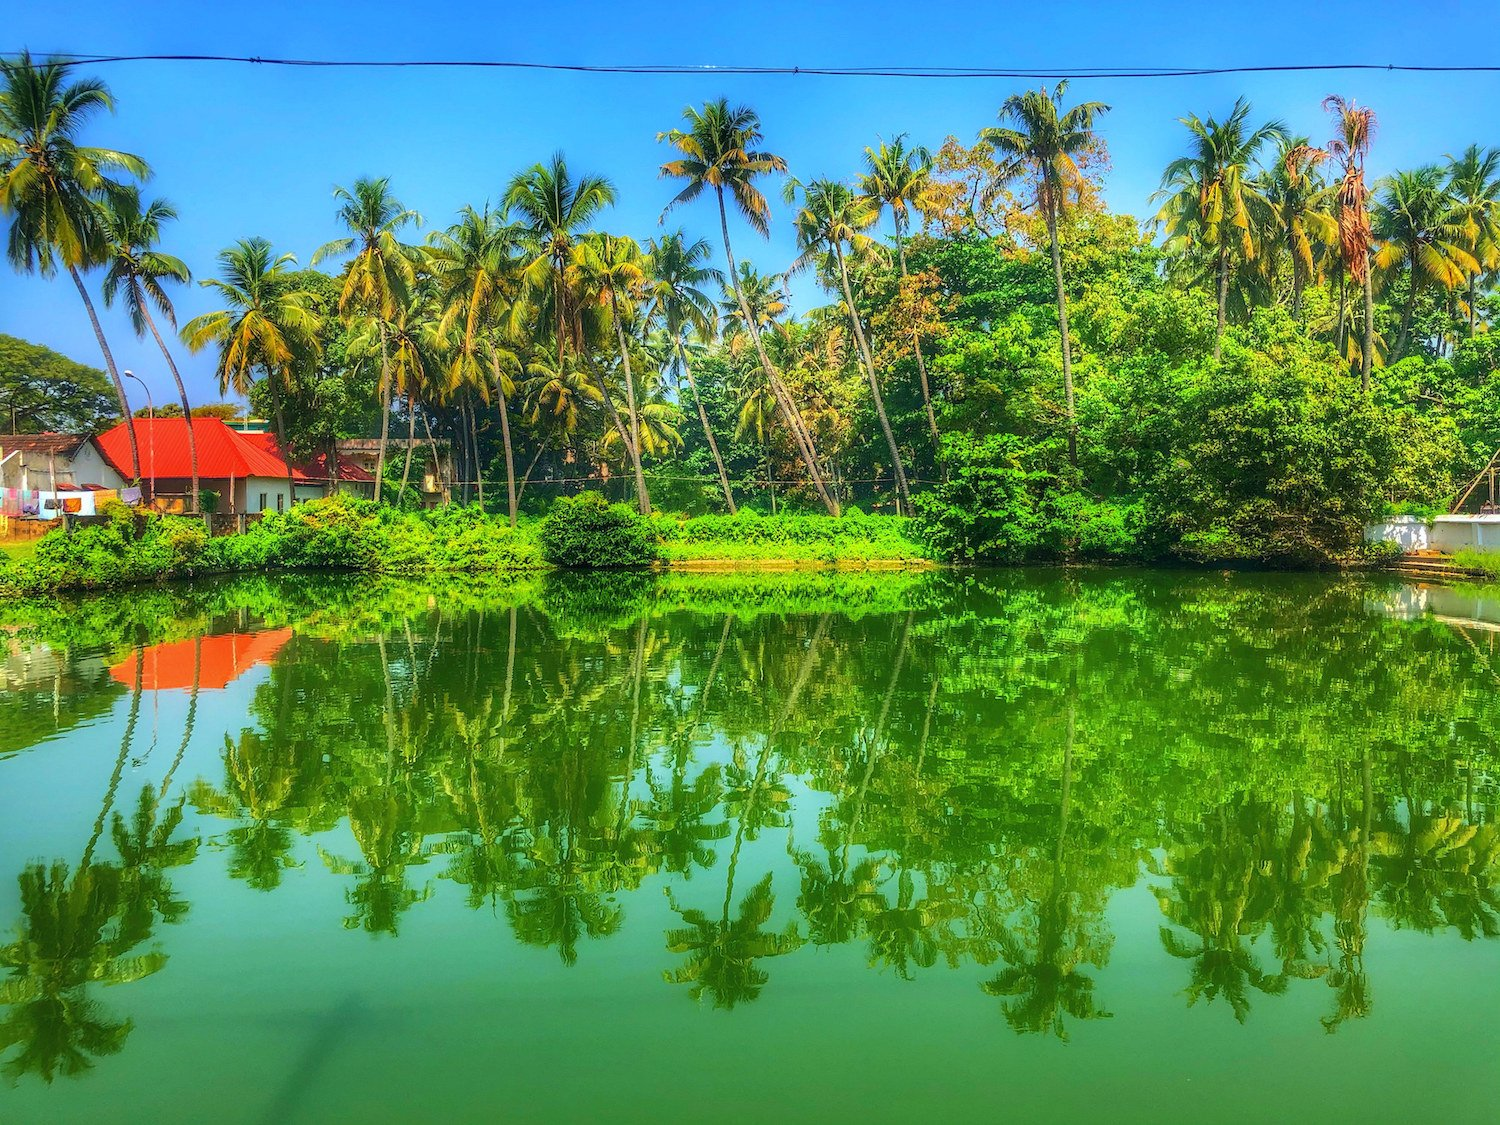 Lake & Palms next to temple Fort Kochi